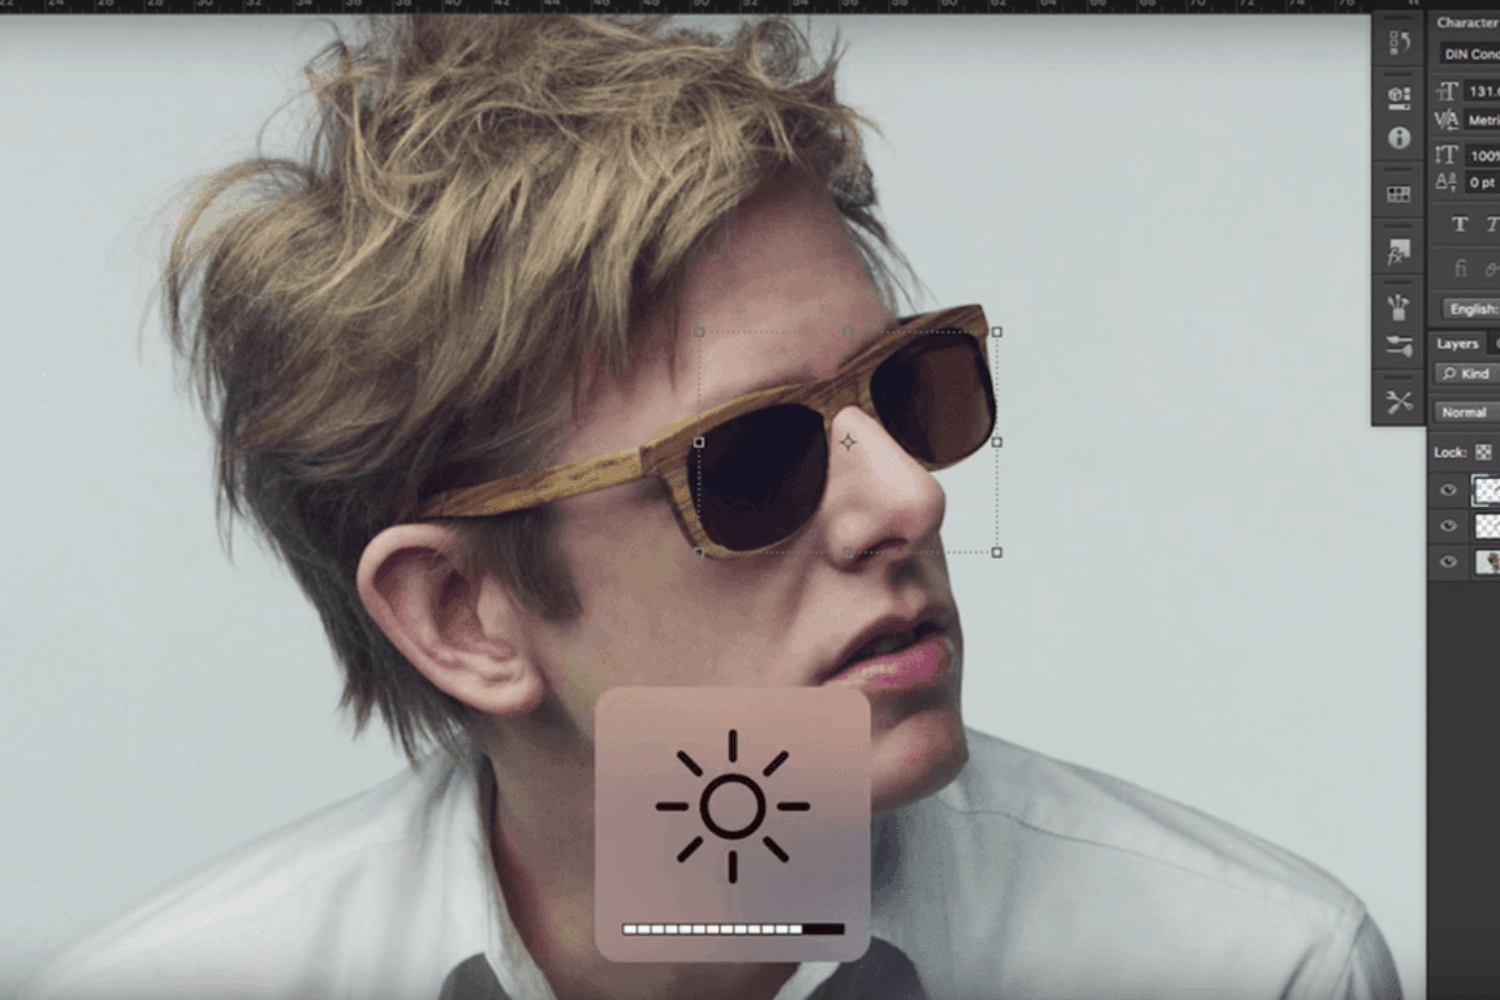 Spoon get photoshopped in the video for 'Do I Have To Talk You Into It'